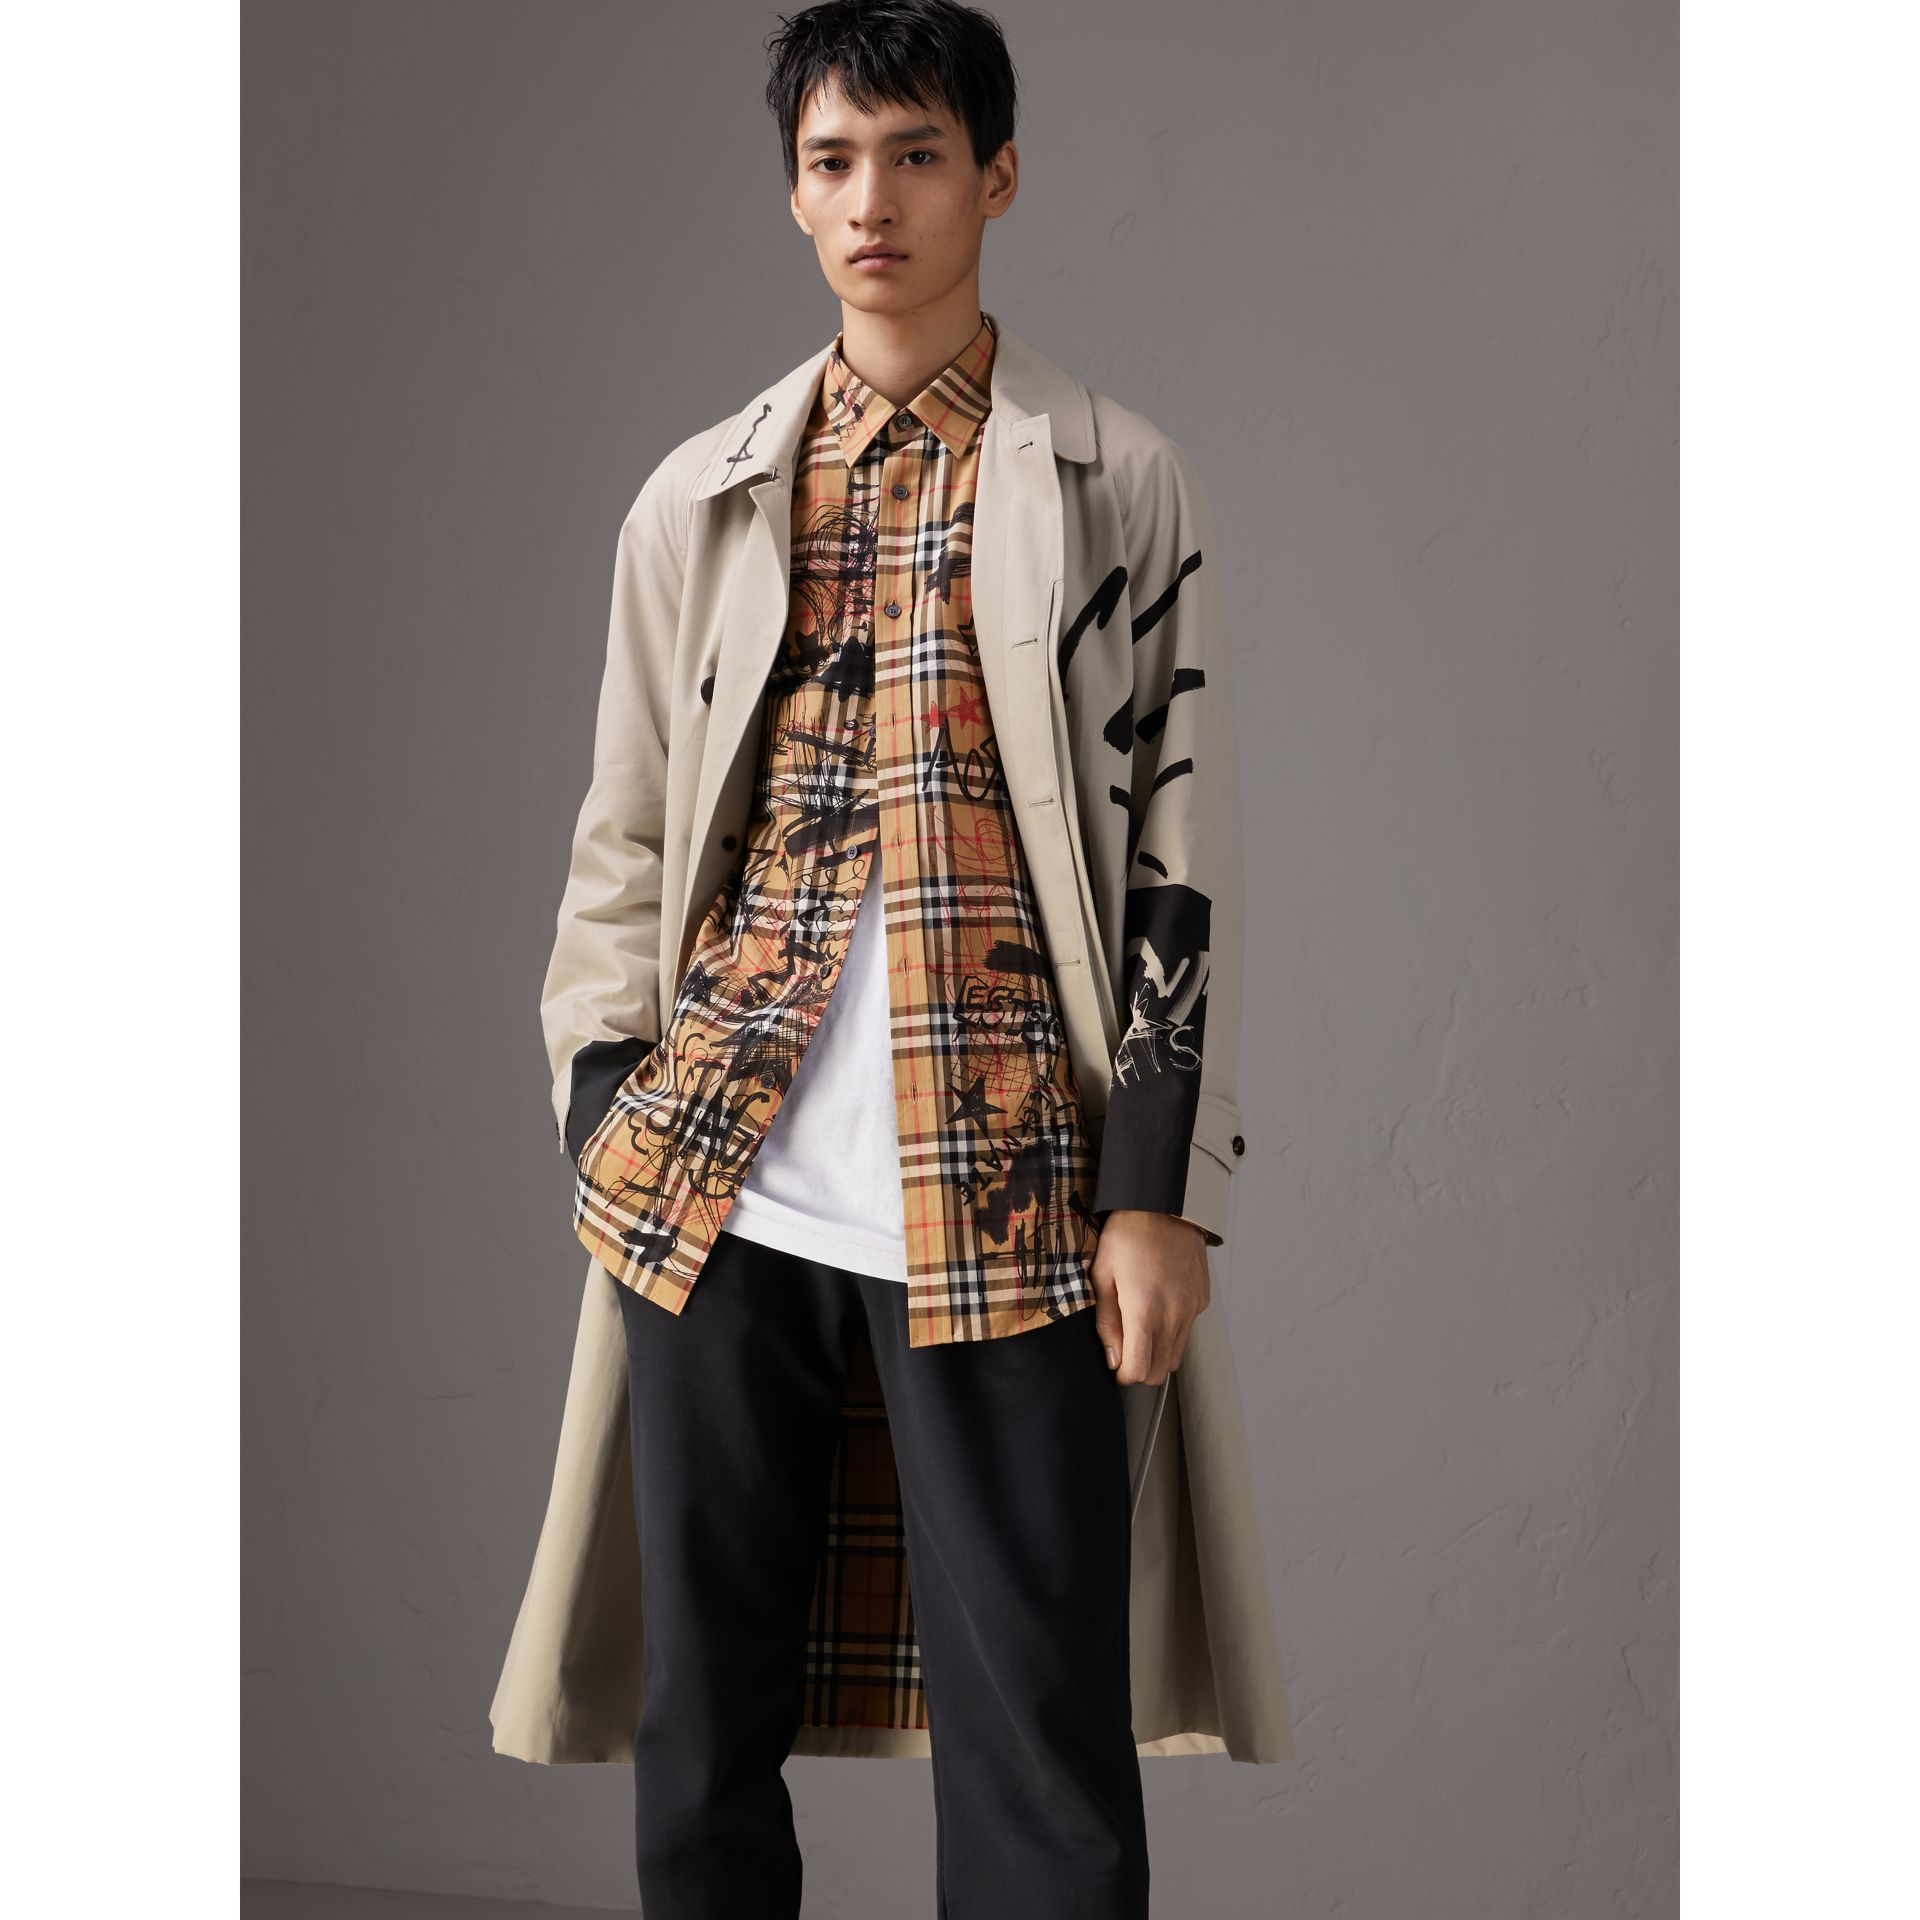 Burberry x Kris Wu Gabardine Car Coat in Stone - Men | Burberry - gallery image 6